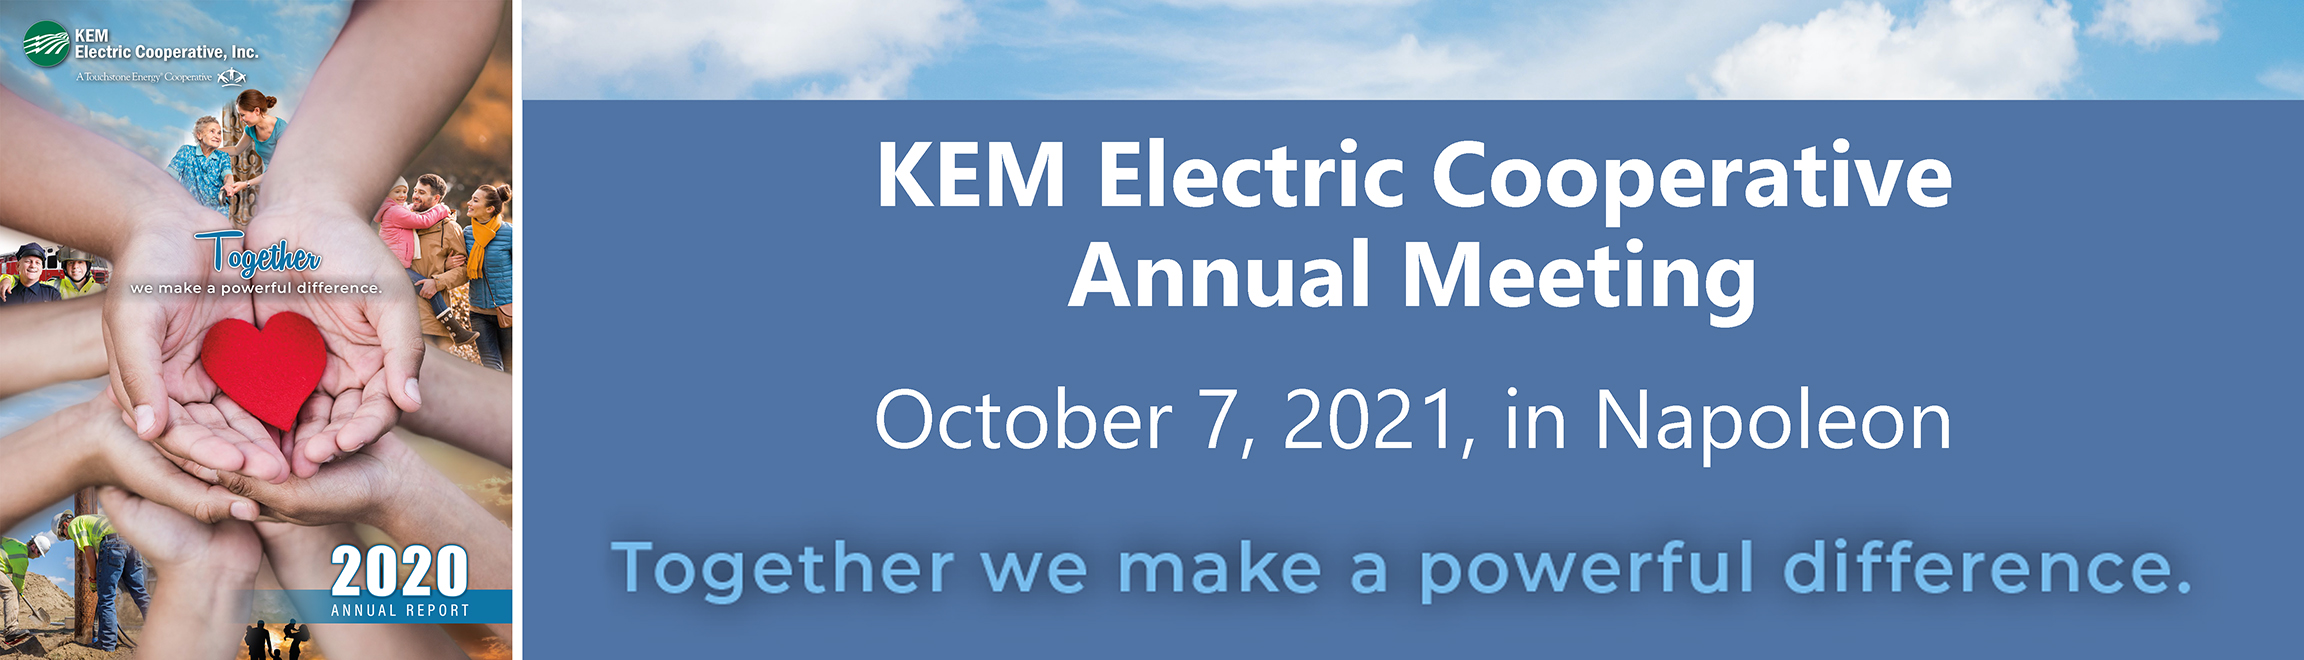 Attend KEM's annual meeting Oct 7 in Napoleon